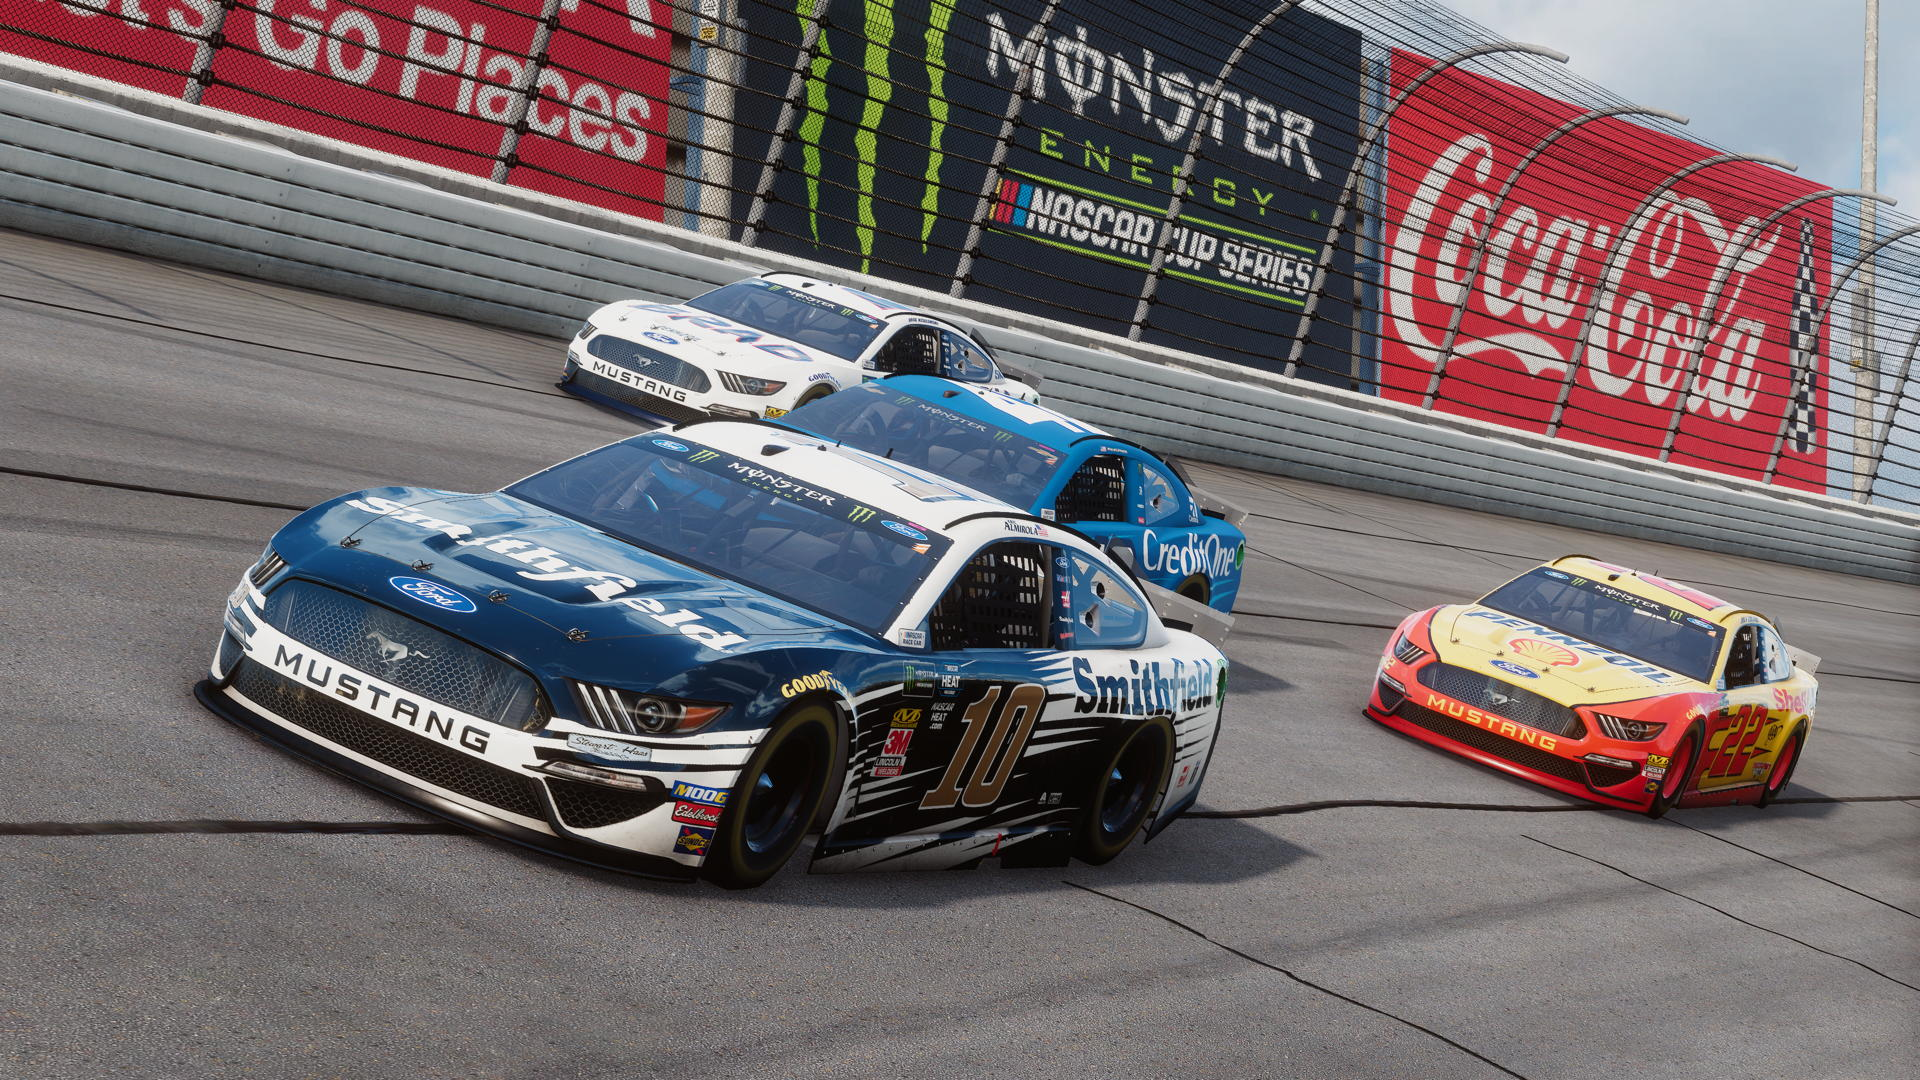 NASCAR Heat 4 returns to answer more fans' requests in September